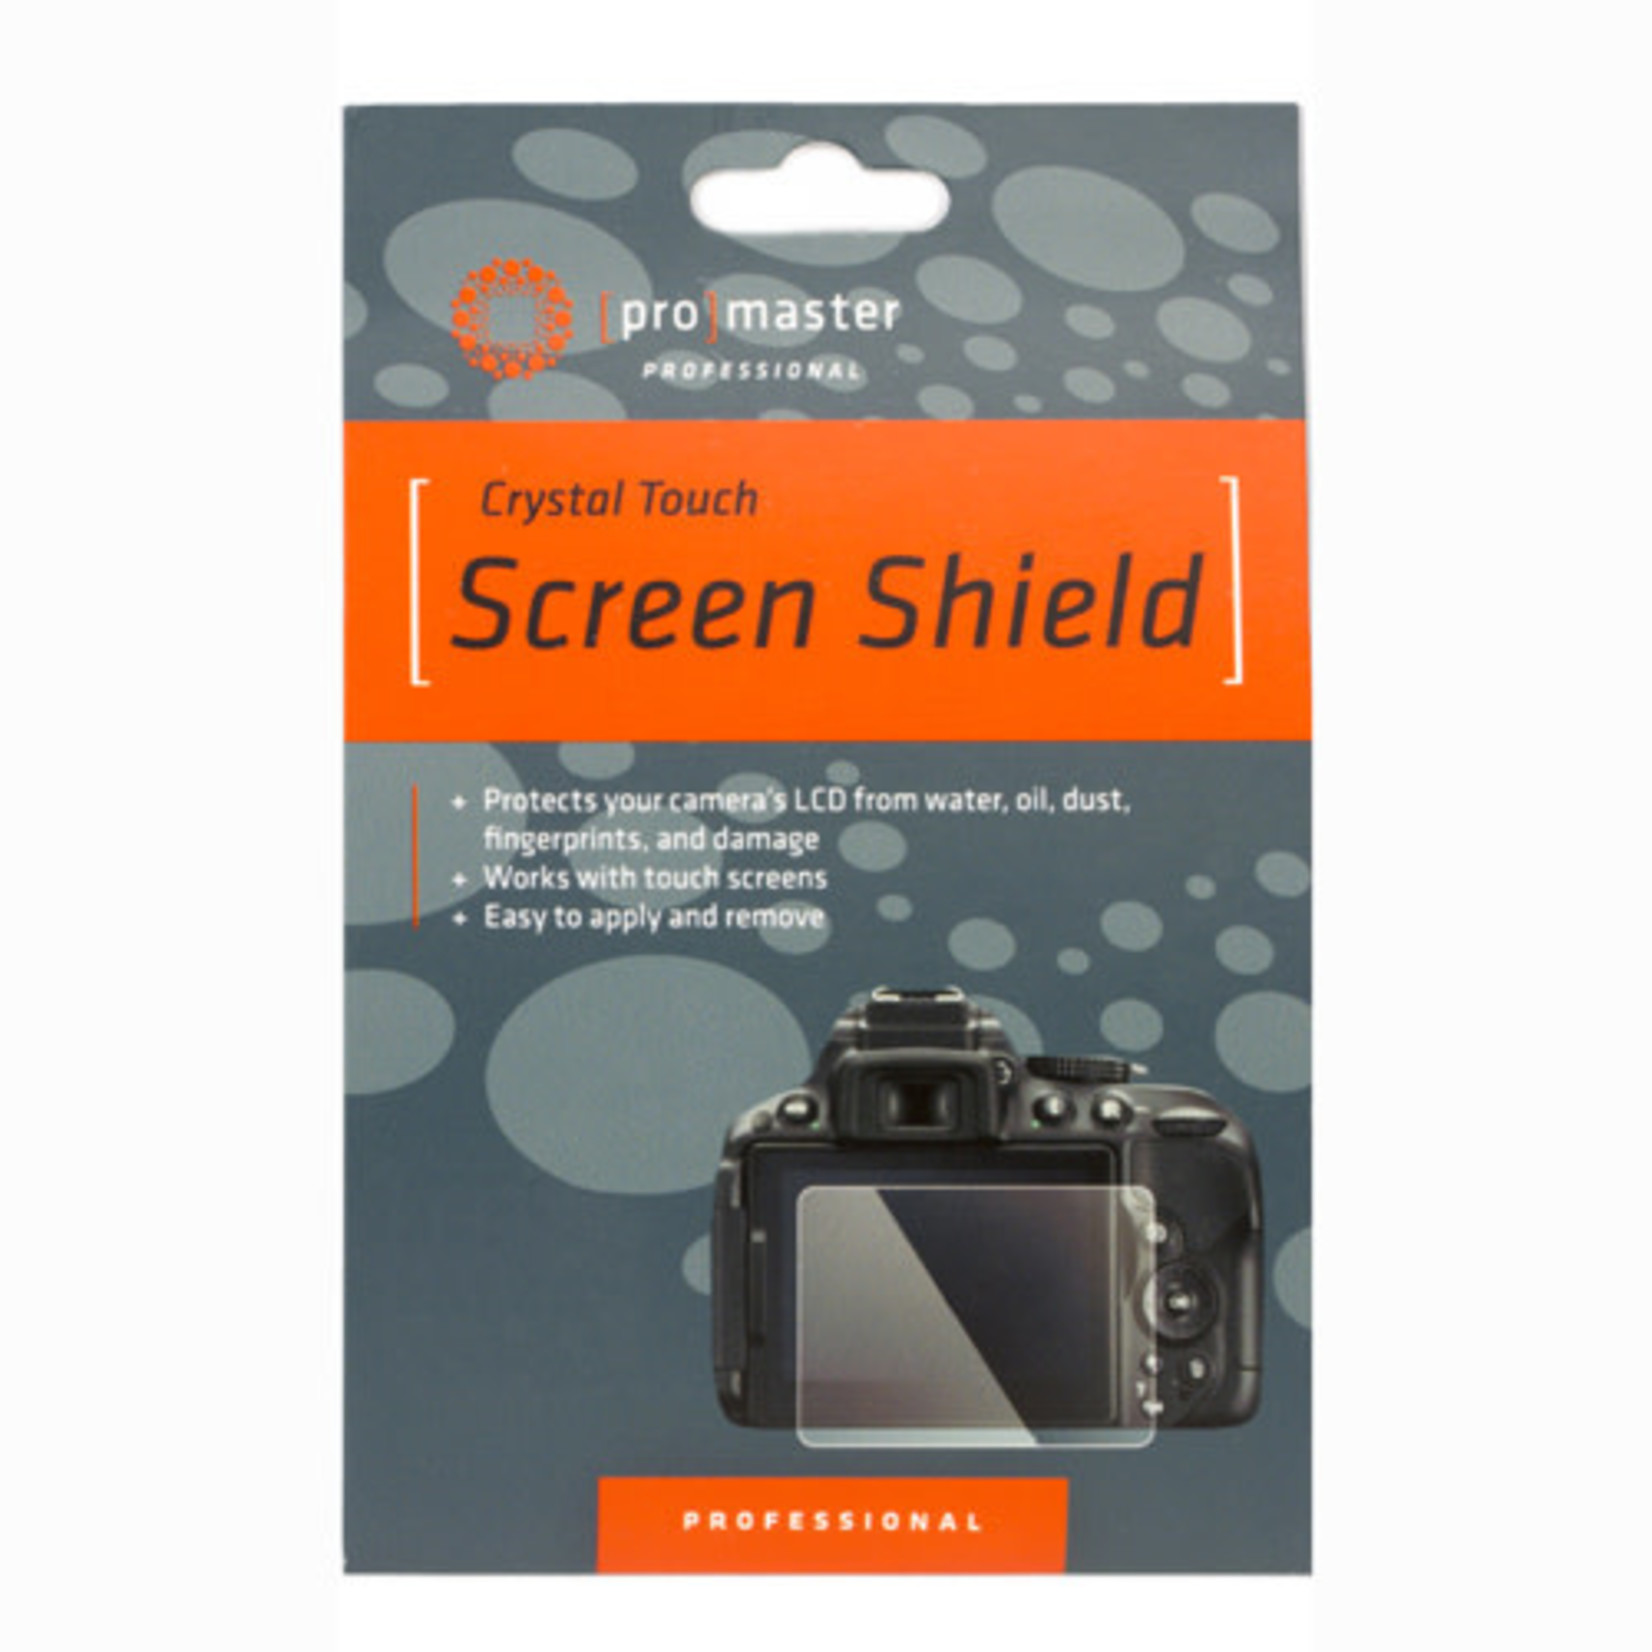 ProMaster Crystal Touch Screen Shield - Nikon Z7, Z6 and Panasonic DC-S1, DC-S1R, DC-S1H